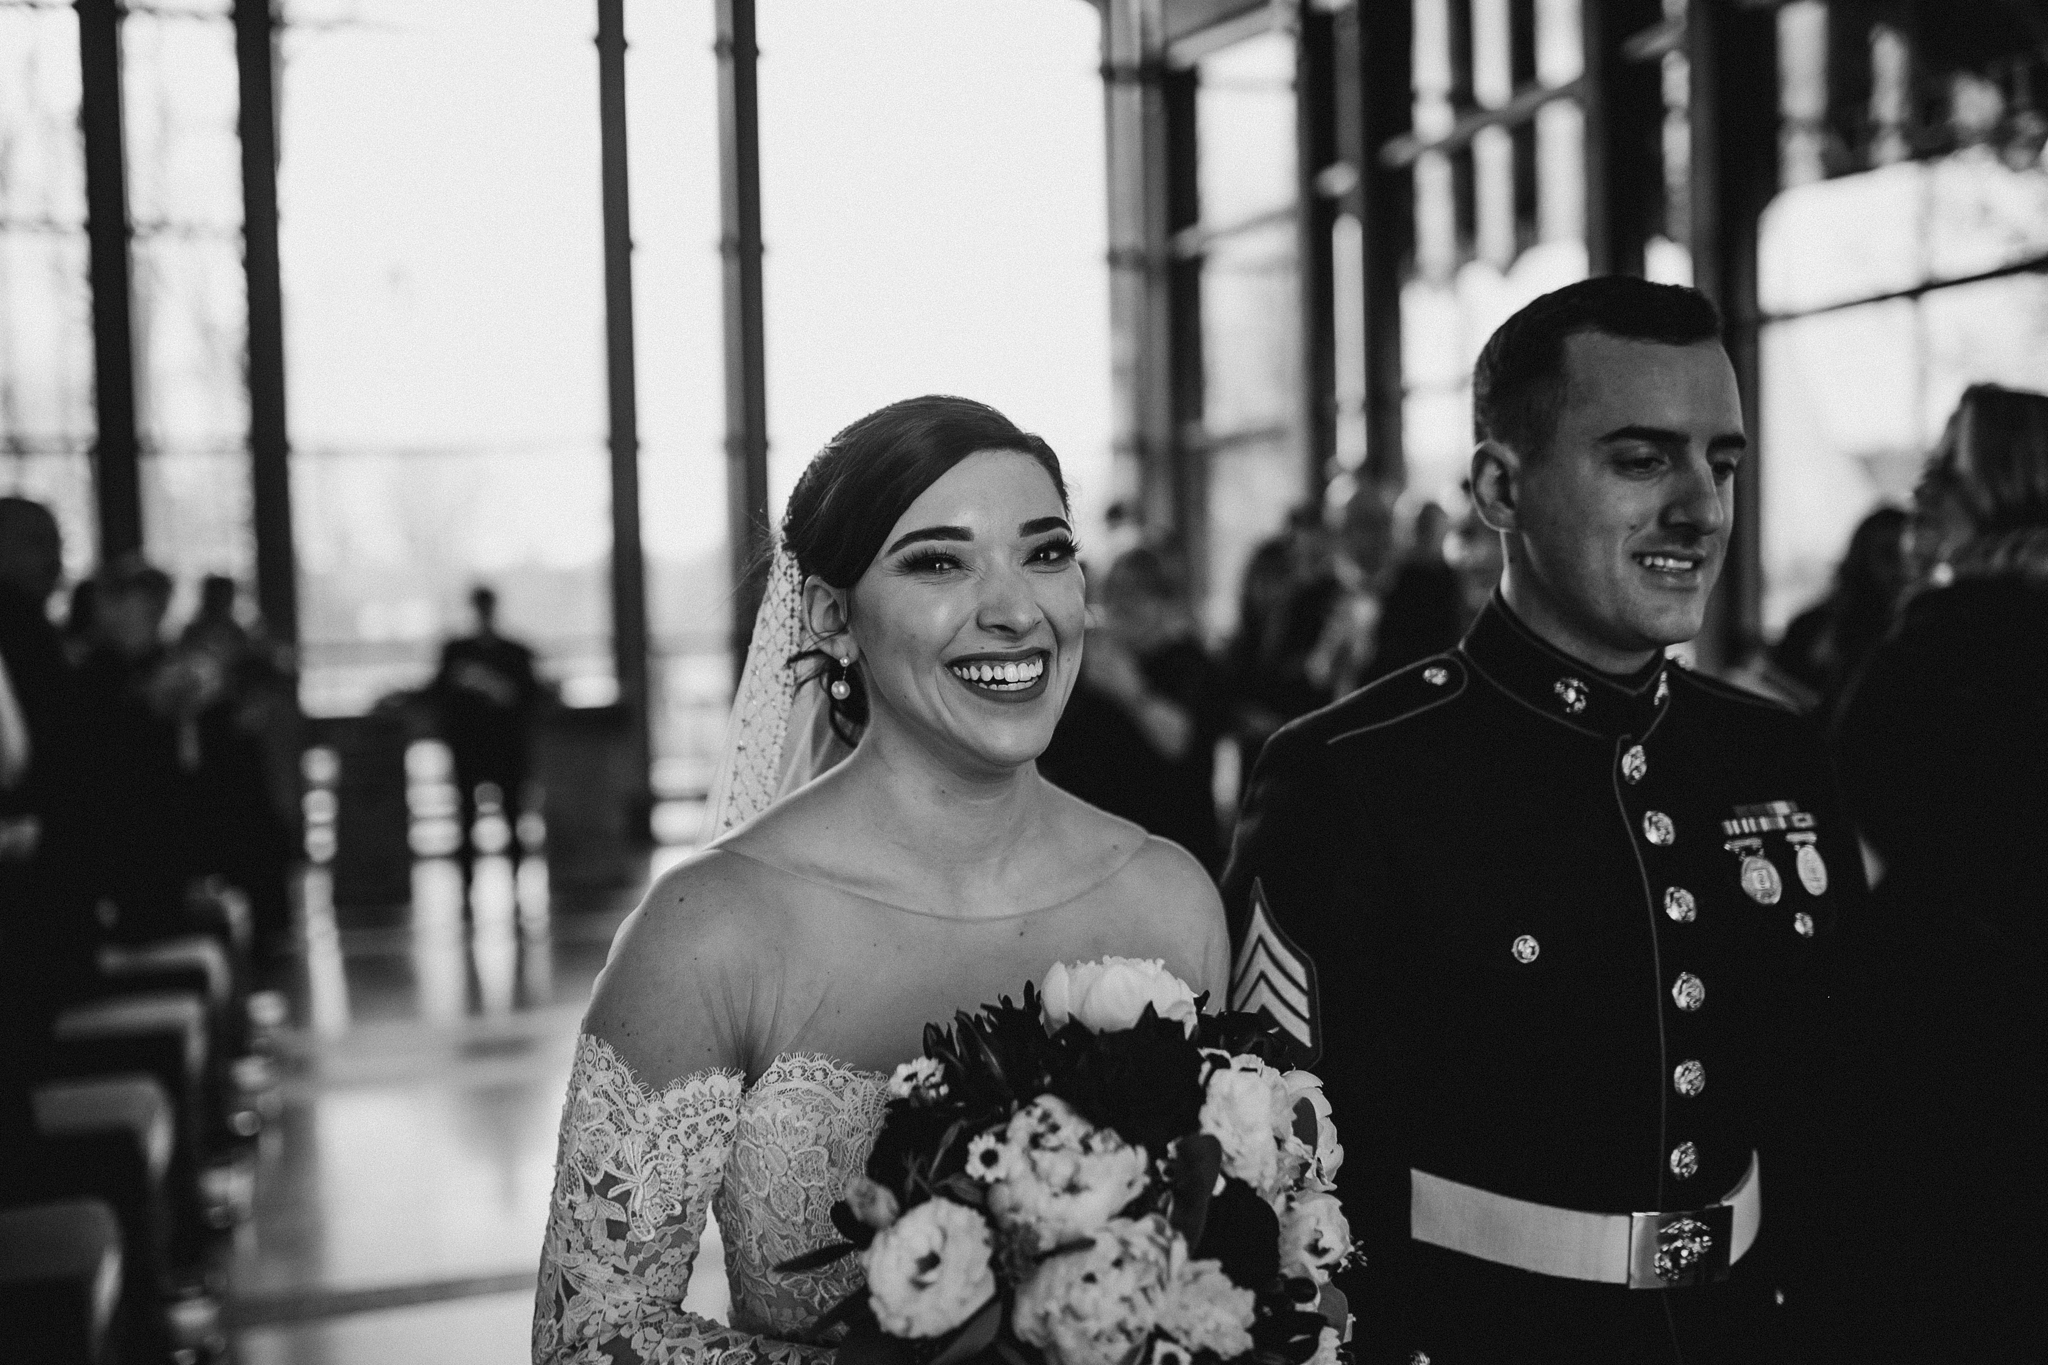 solinsky_wedding_national_museum_of_marine_corp-11.jpg